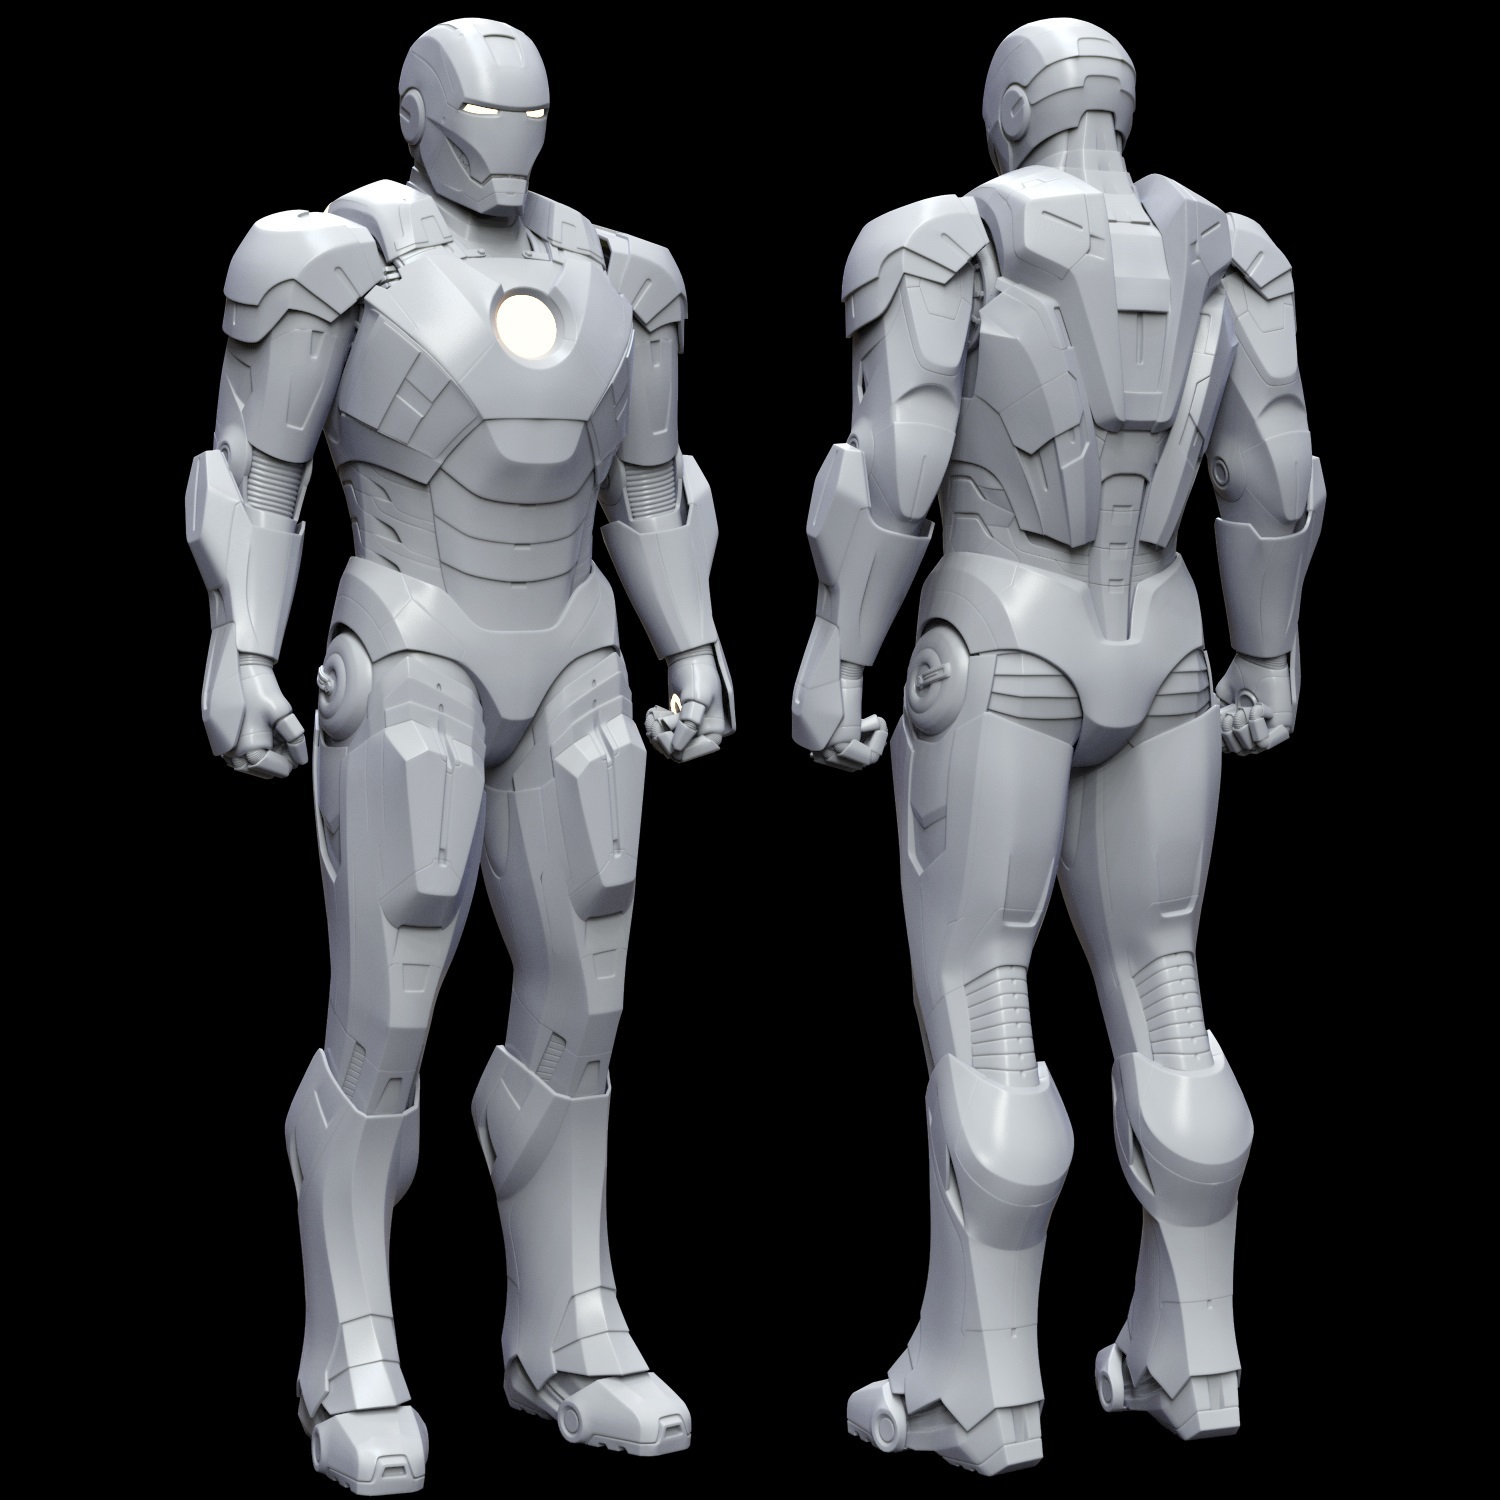 mk-7-mark-vii-tony-stark-iron-man-3-helmet-armor-cosplay-prop-replica-3d-printable-model-print-file-stl-do3d-com.jpg Download free STL file Iron Man (Easy Print) • 3D printer object, THUG